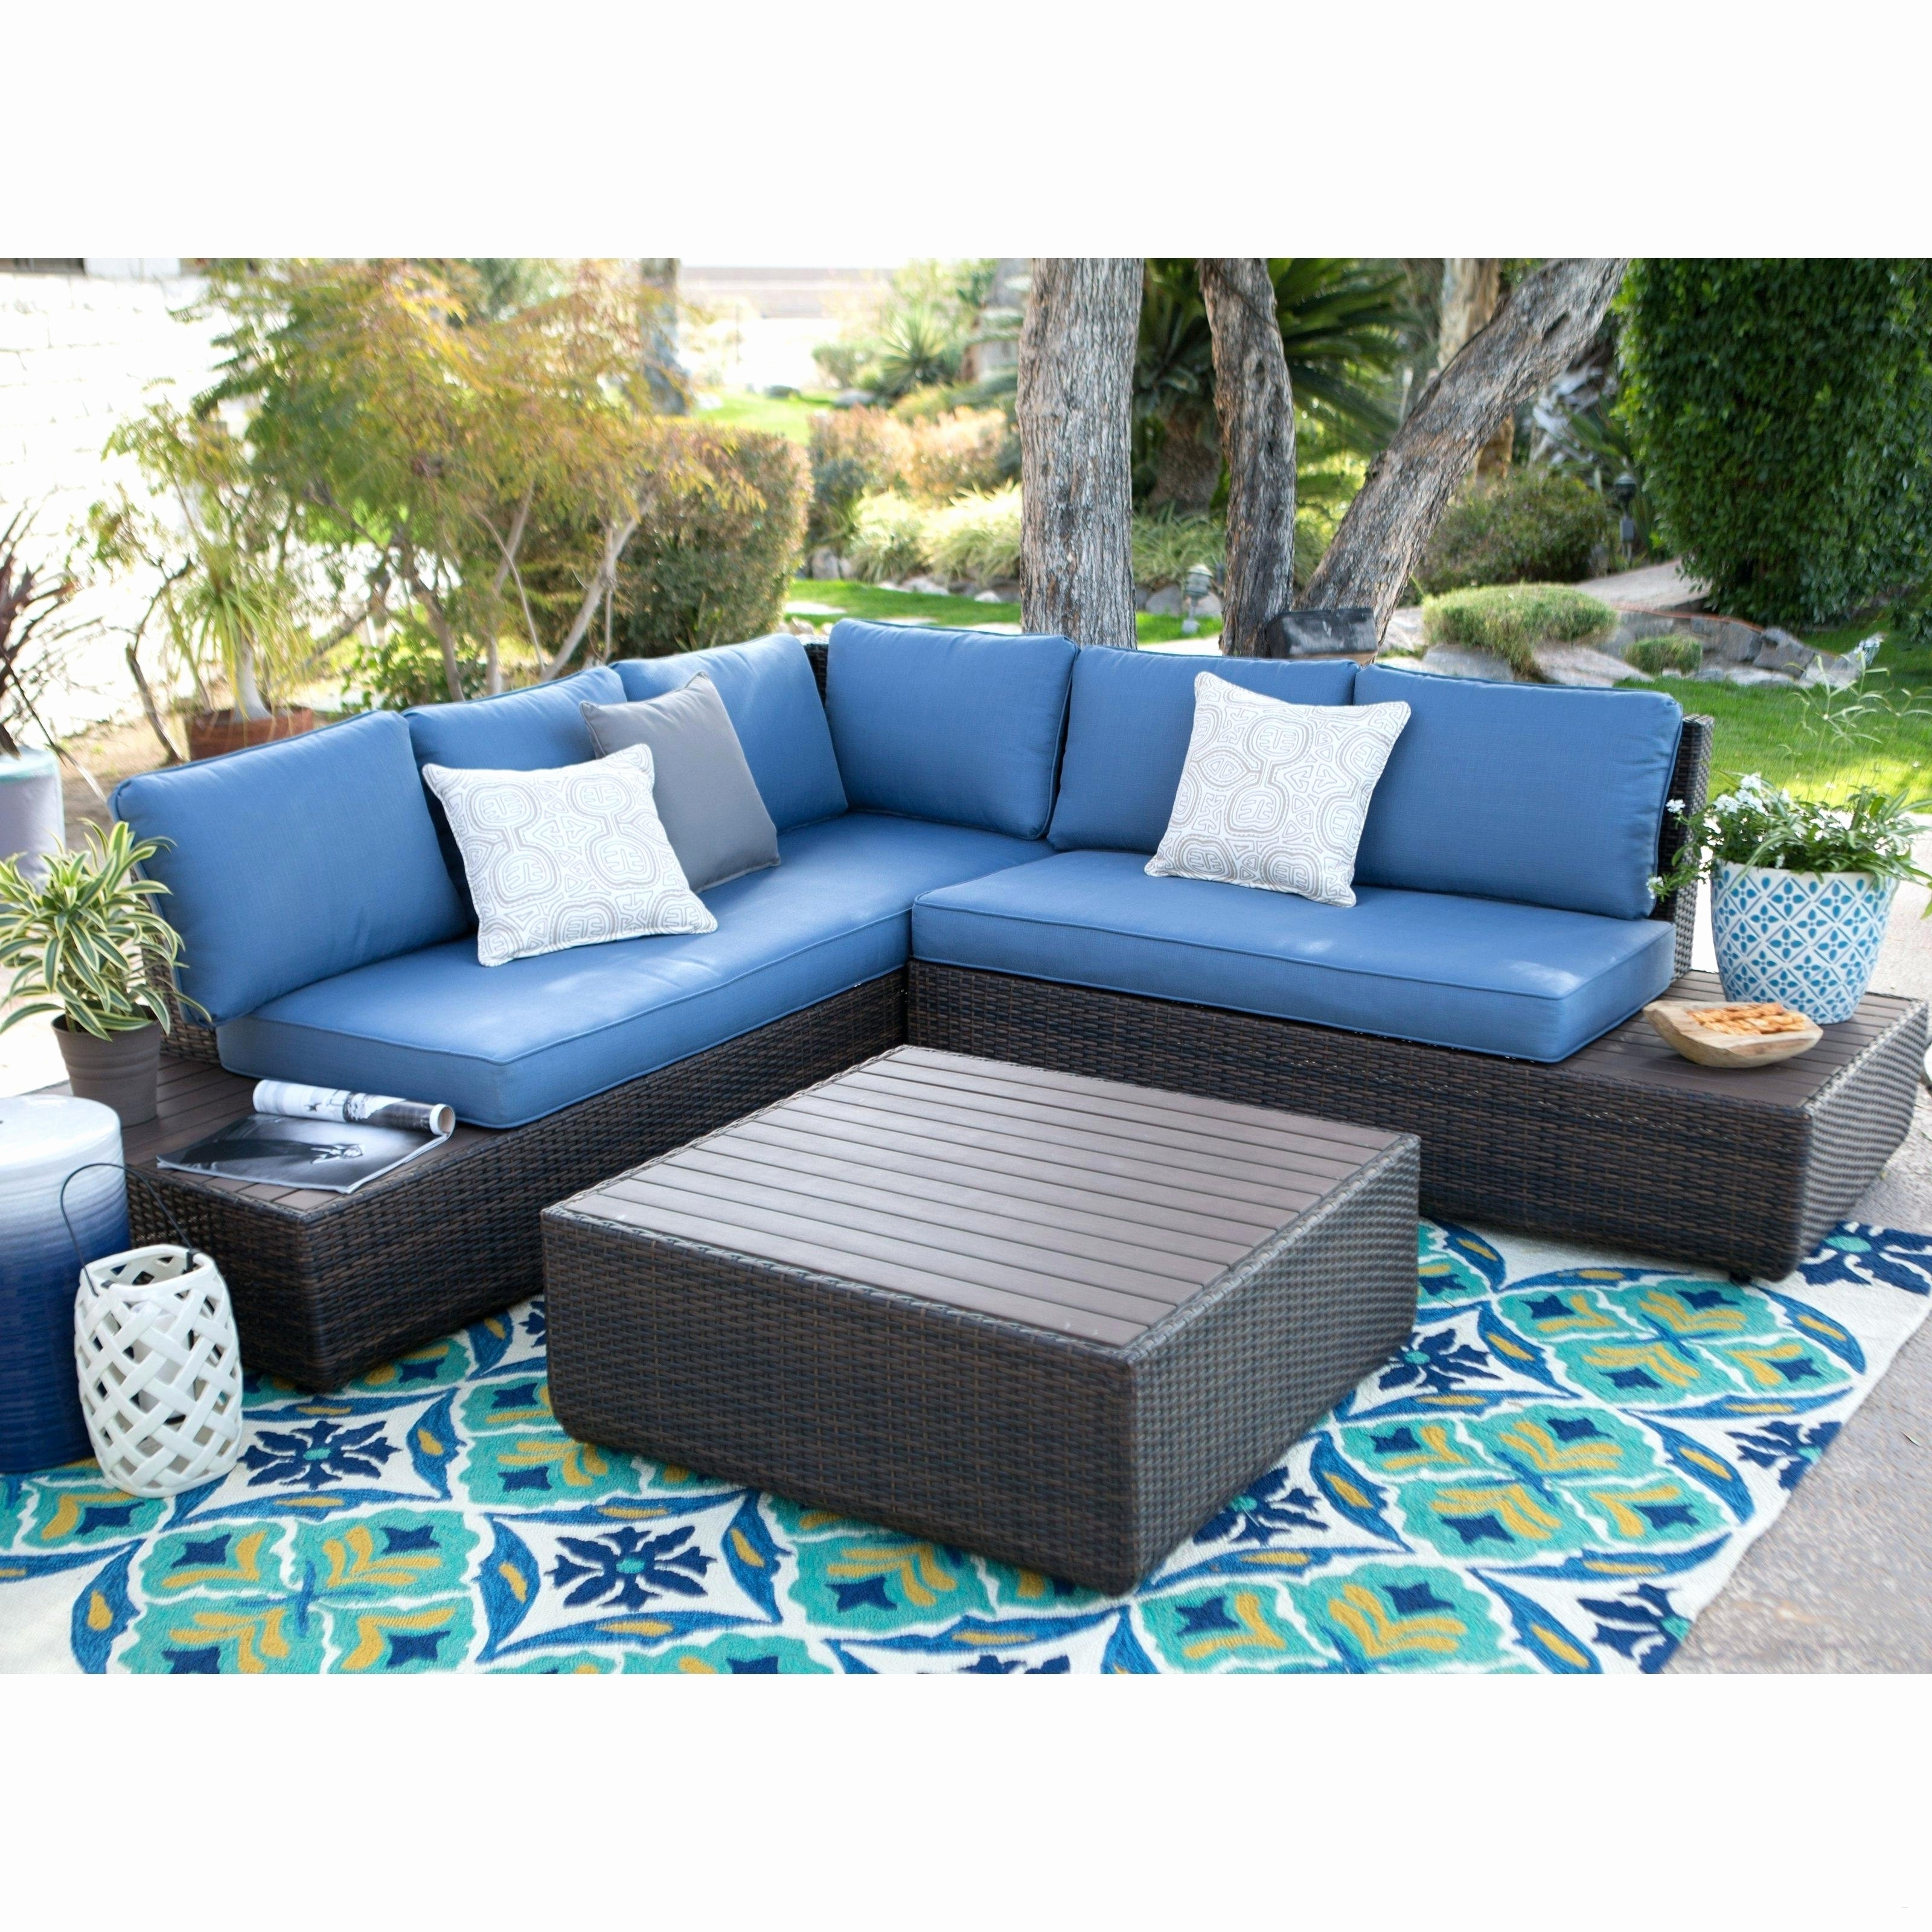 Amazon Patio Furniture Conversation Sets Throughout Latest Amazon Outdoor Furniture Awesome 27 Elegant Cheap Patio Conversation (View 9 of 20)